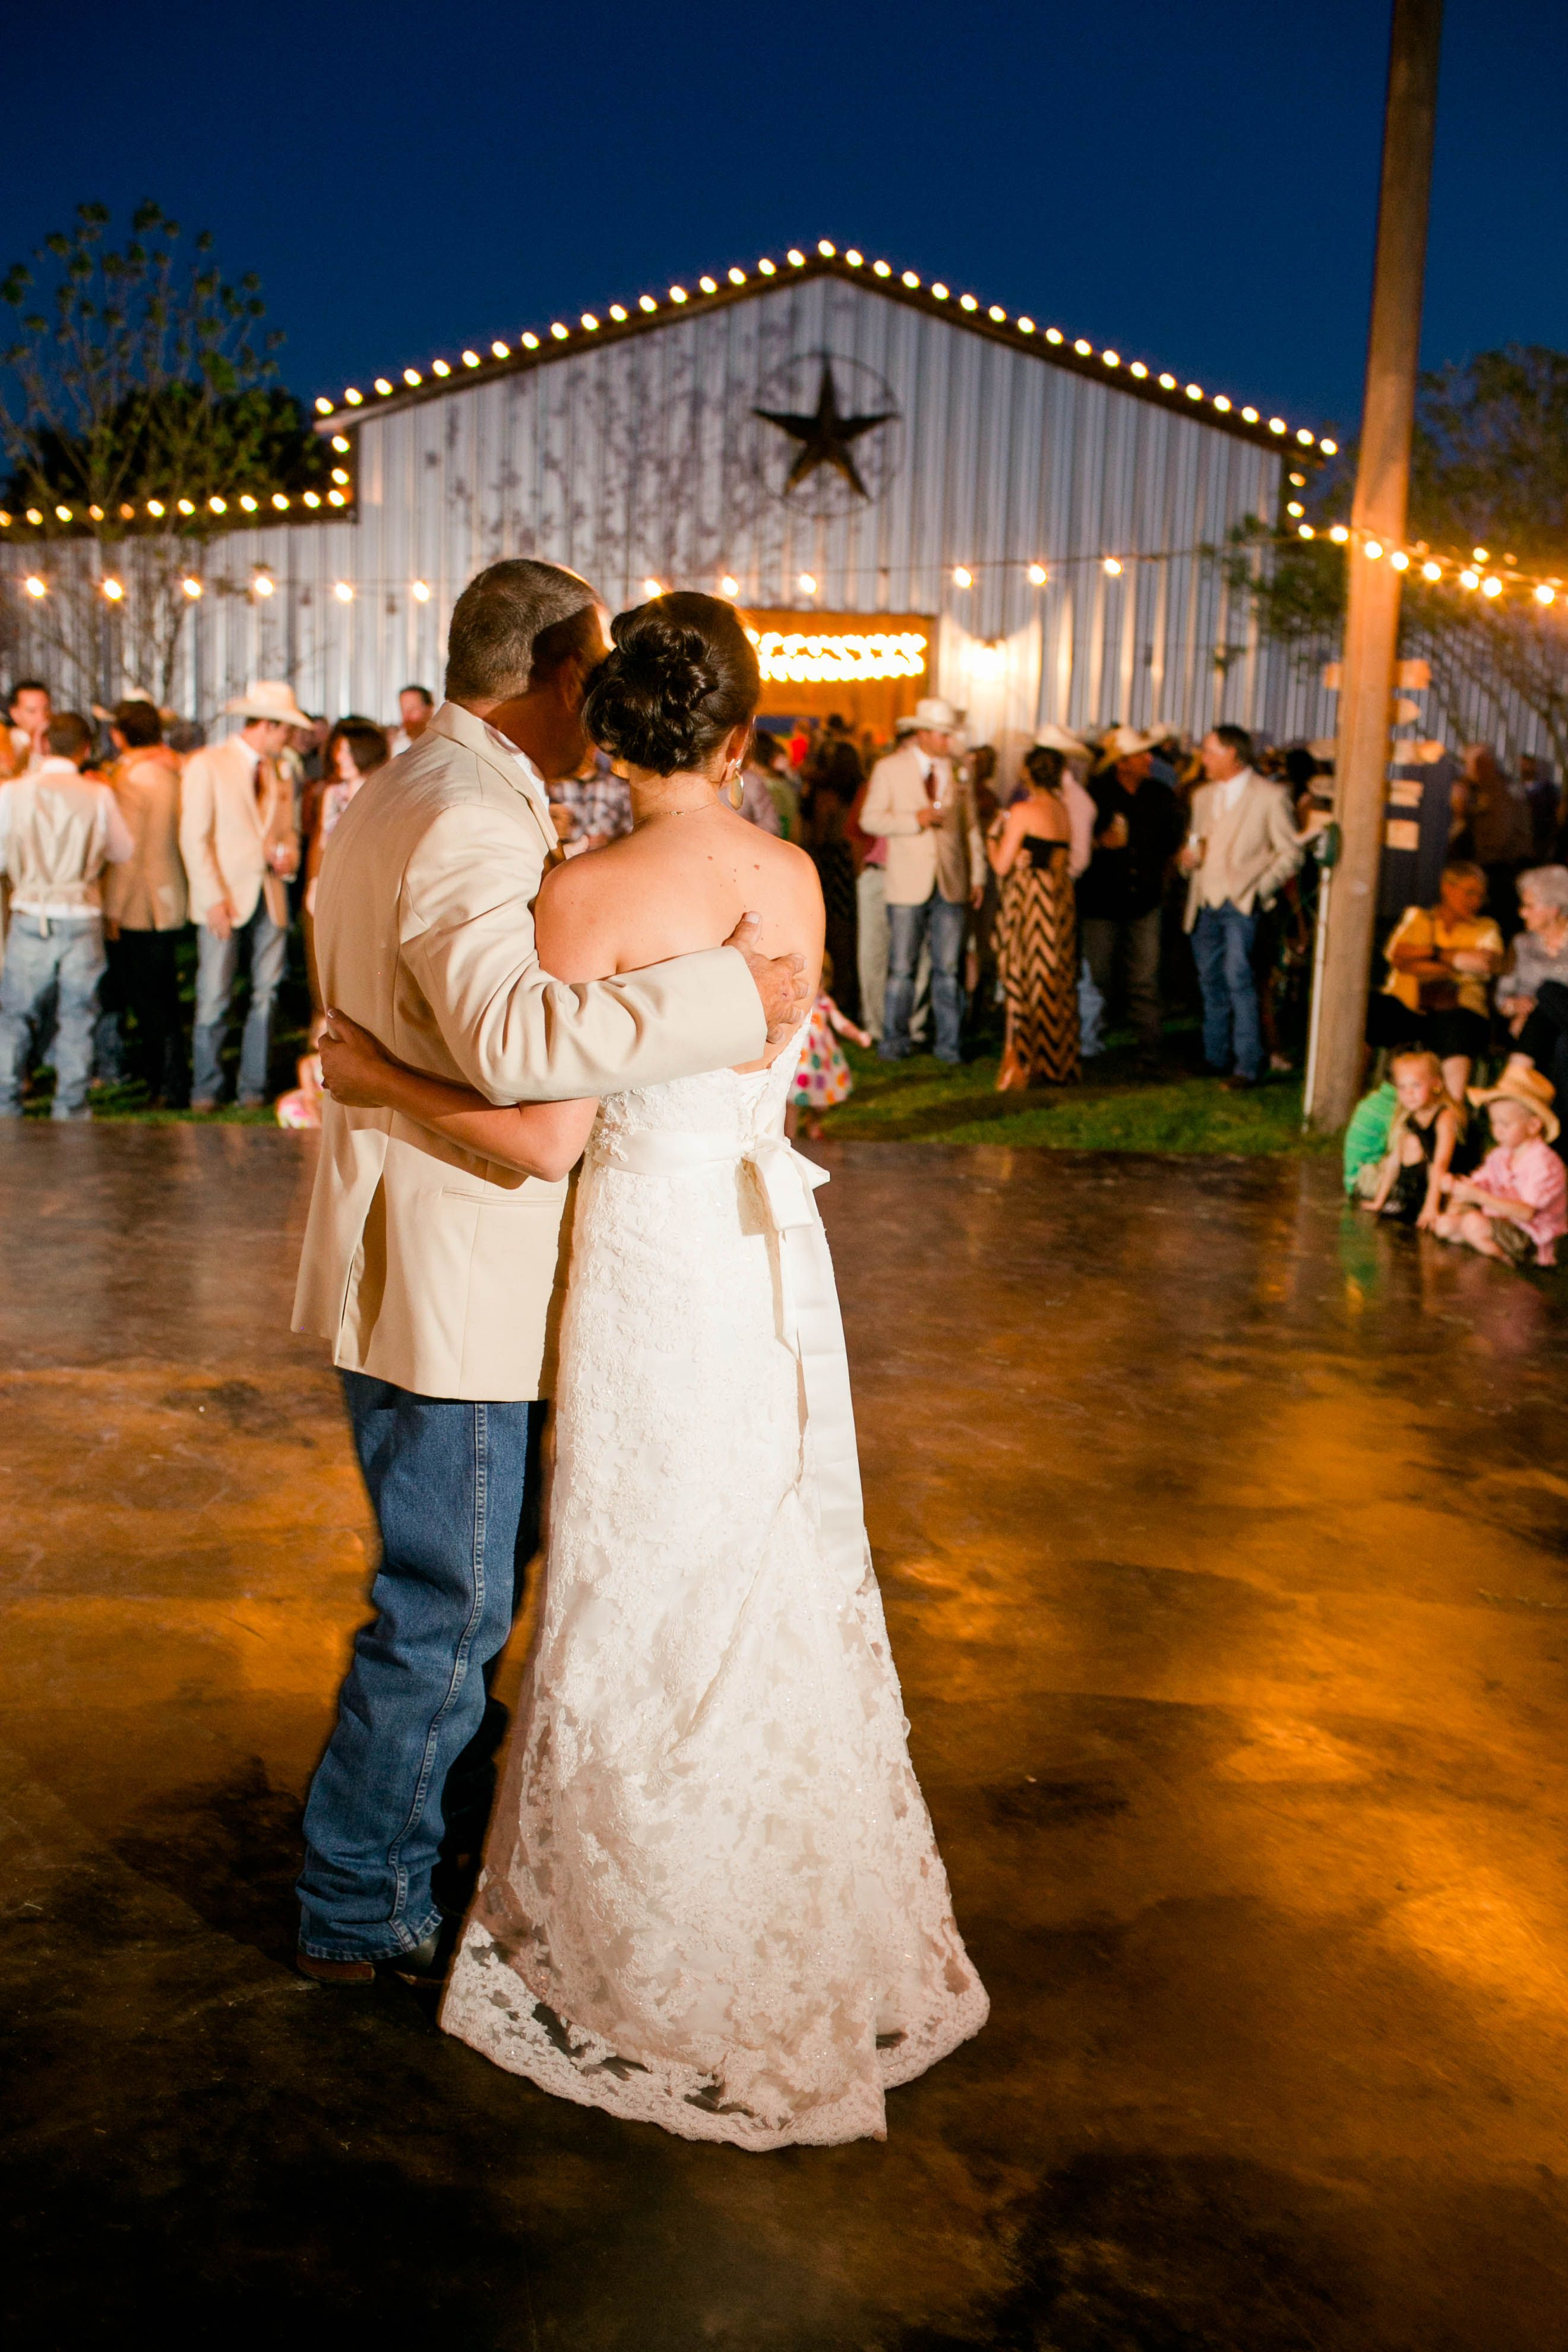 Wied wedding at cotton creek lubbock tx cotton creek weddings wied wedding at cotton creek lubbock tx ombrellifo Gallery